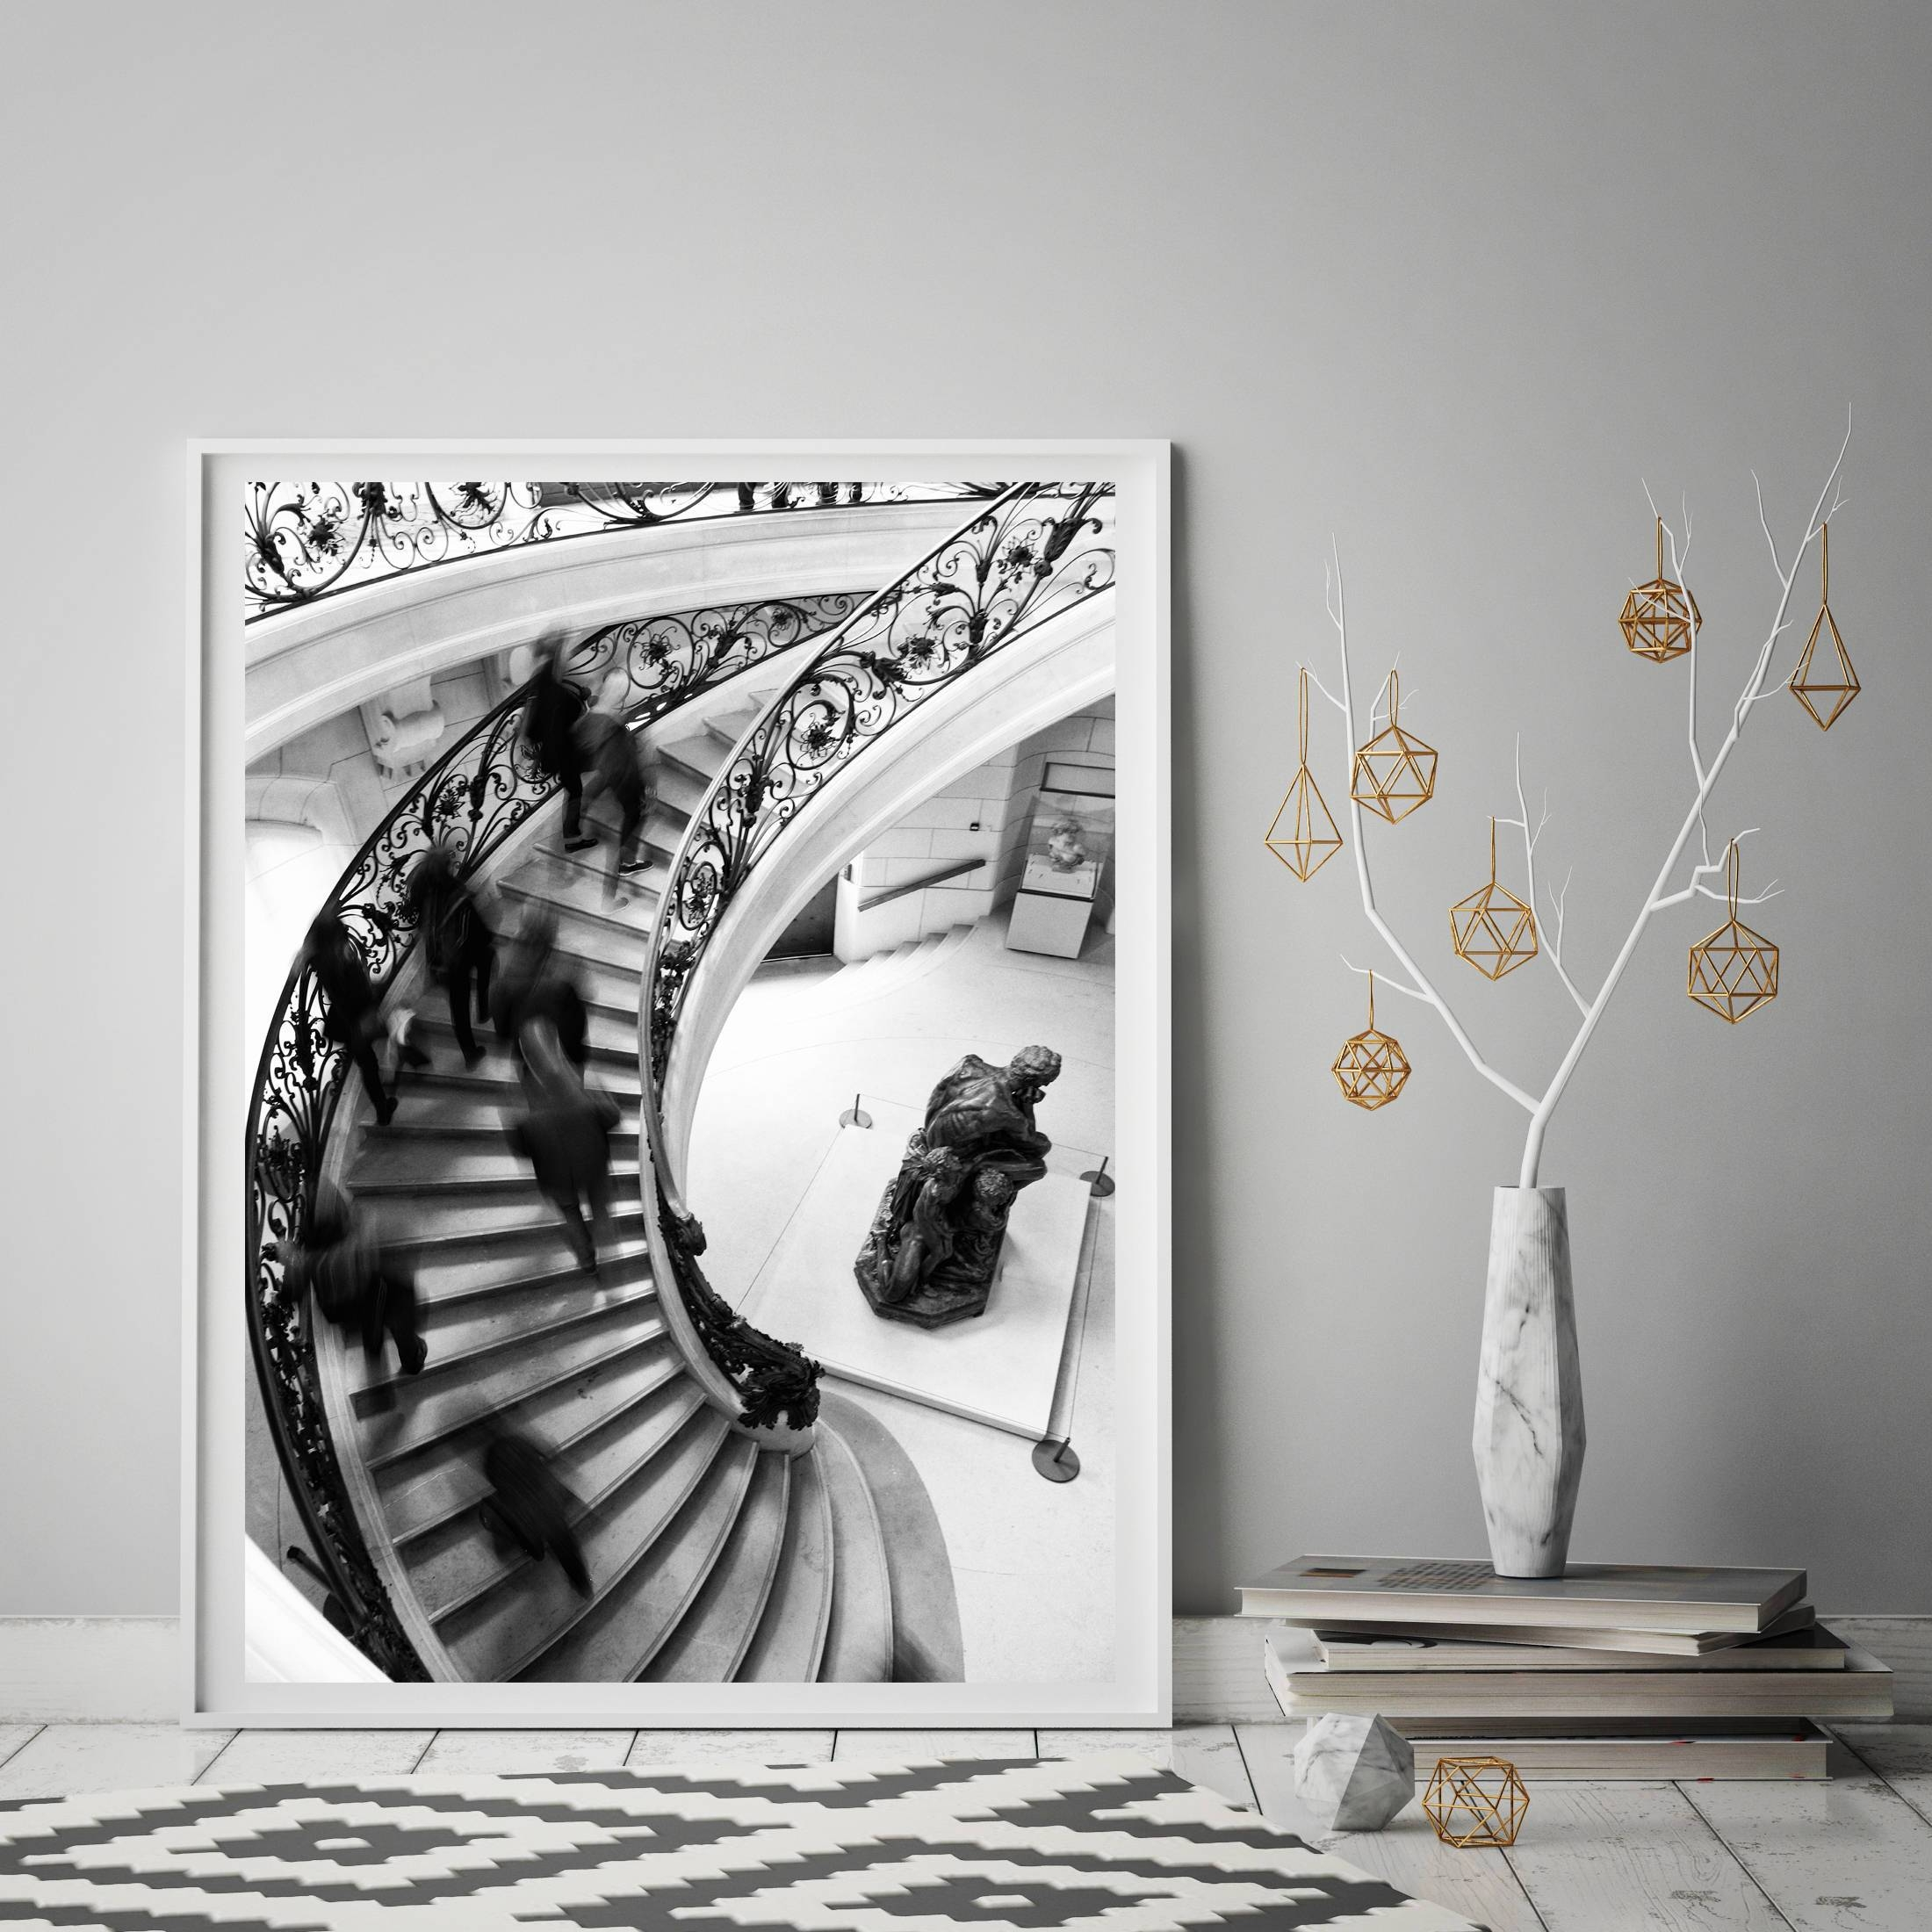 Paris Artwork, Boho Chic Wall Art, Extra Large Wall Art, New Intended For Best And Newest Paris Themed Wall Art (View 11 of 20)